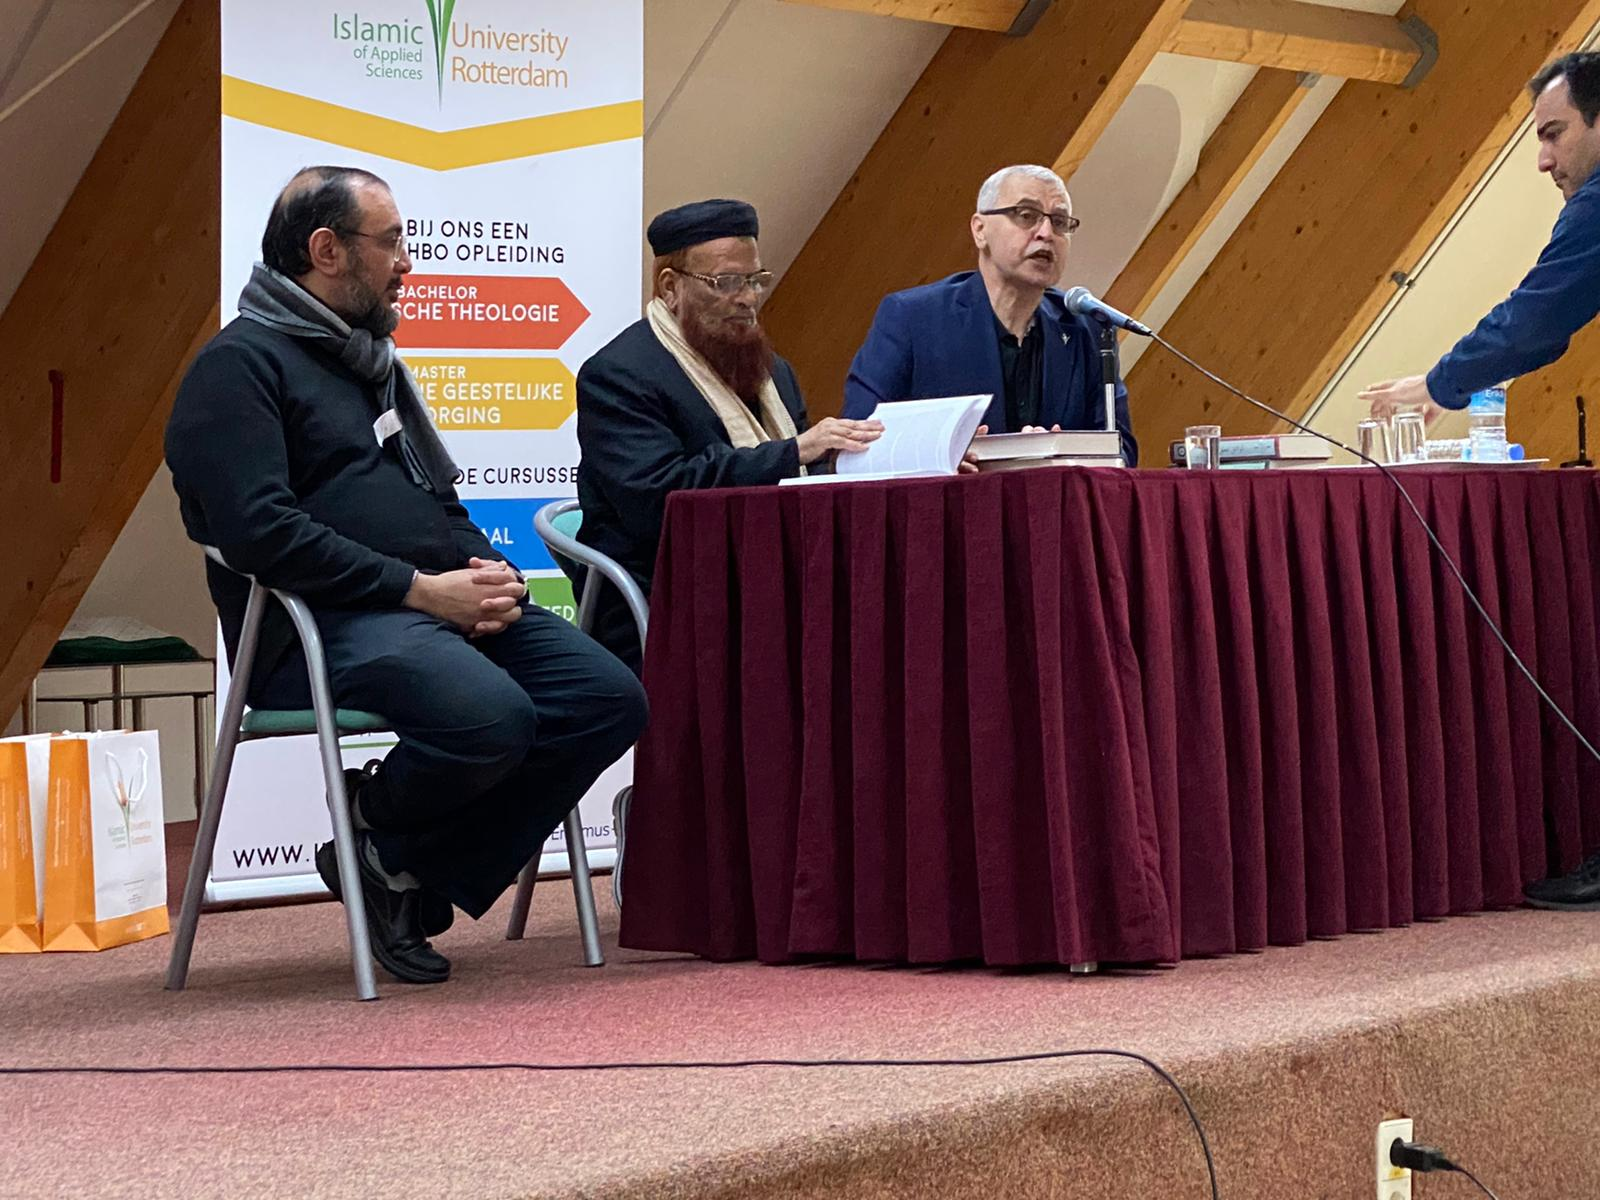 Lecture at Islamic University (Rotterdam)